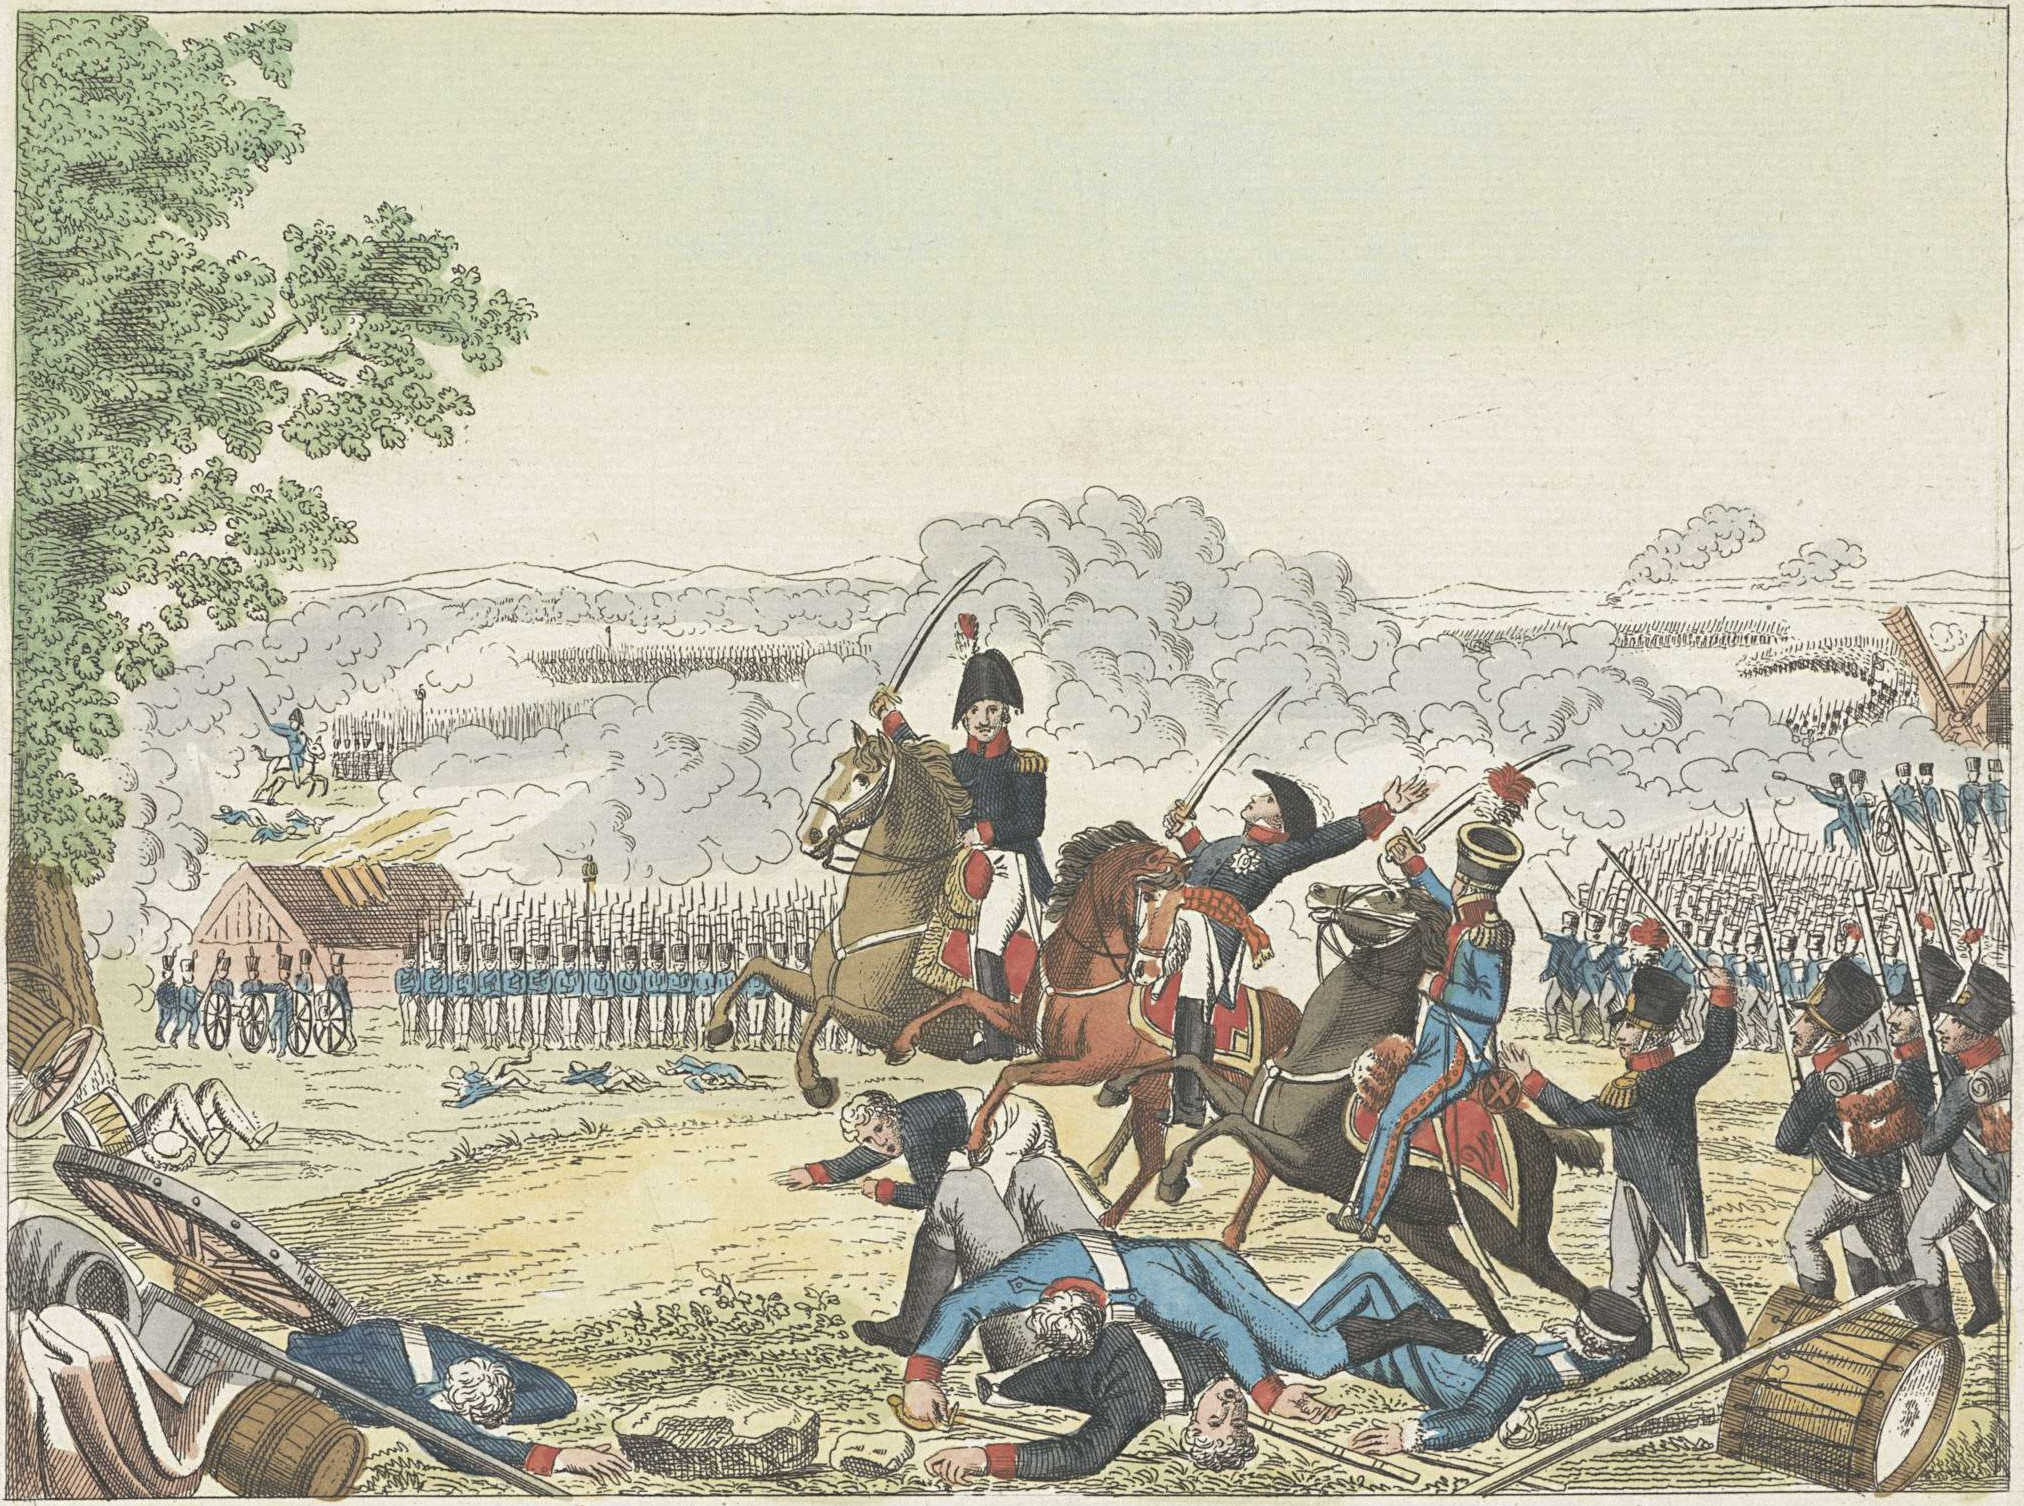 Prince of Orange wounded in Battle of Waterloo 1815